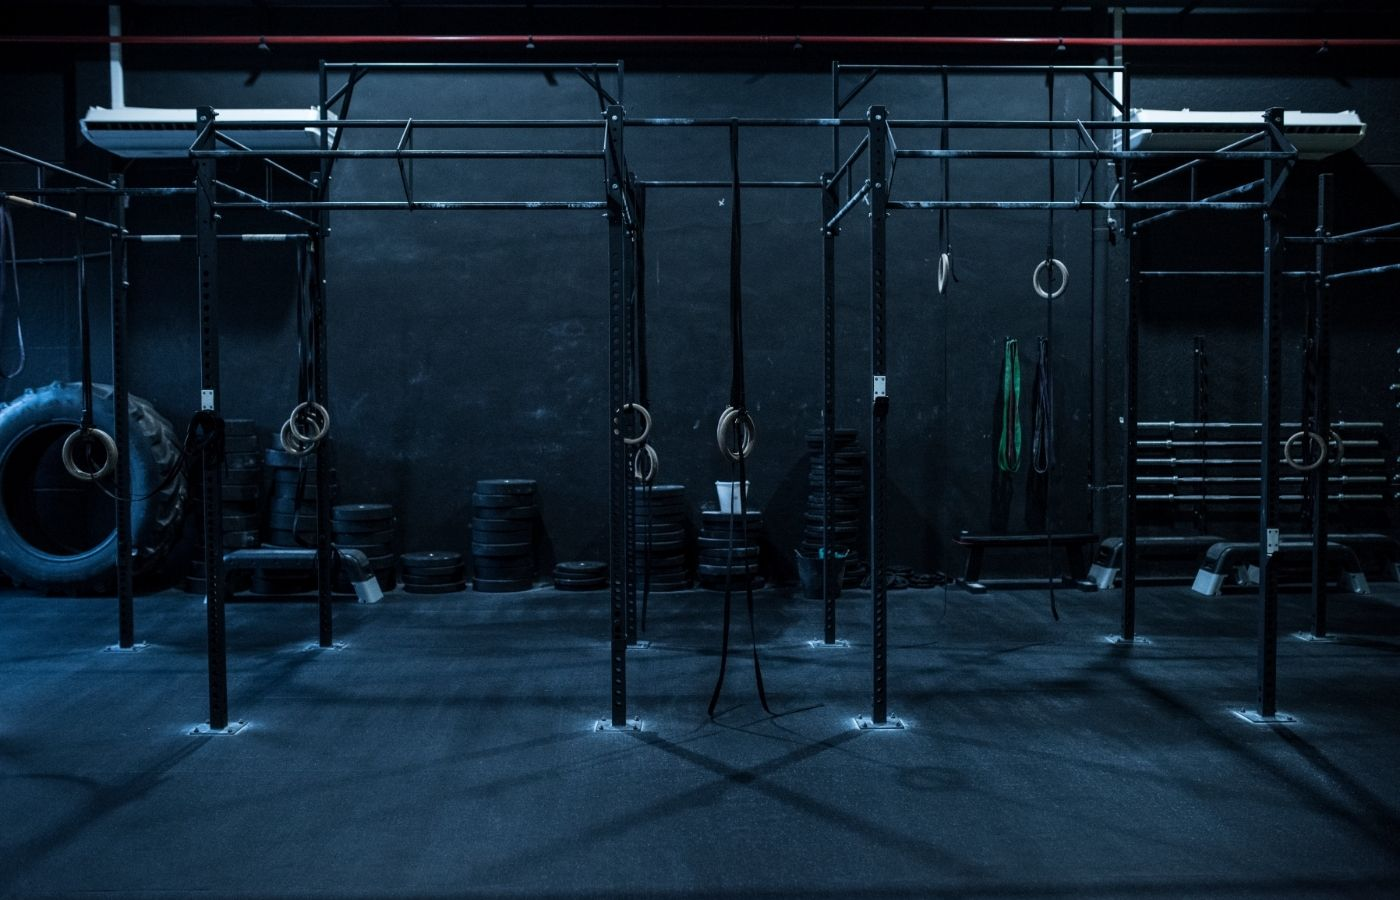 Gym Business Marketing Strategy Analysis in London